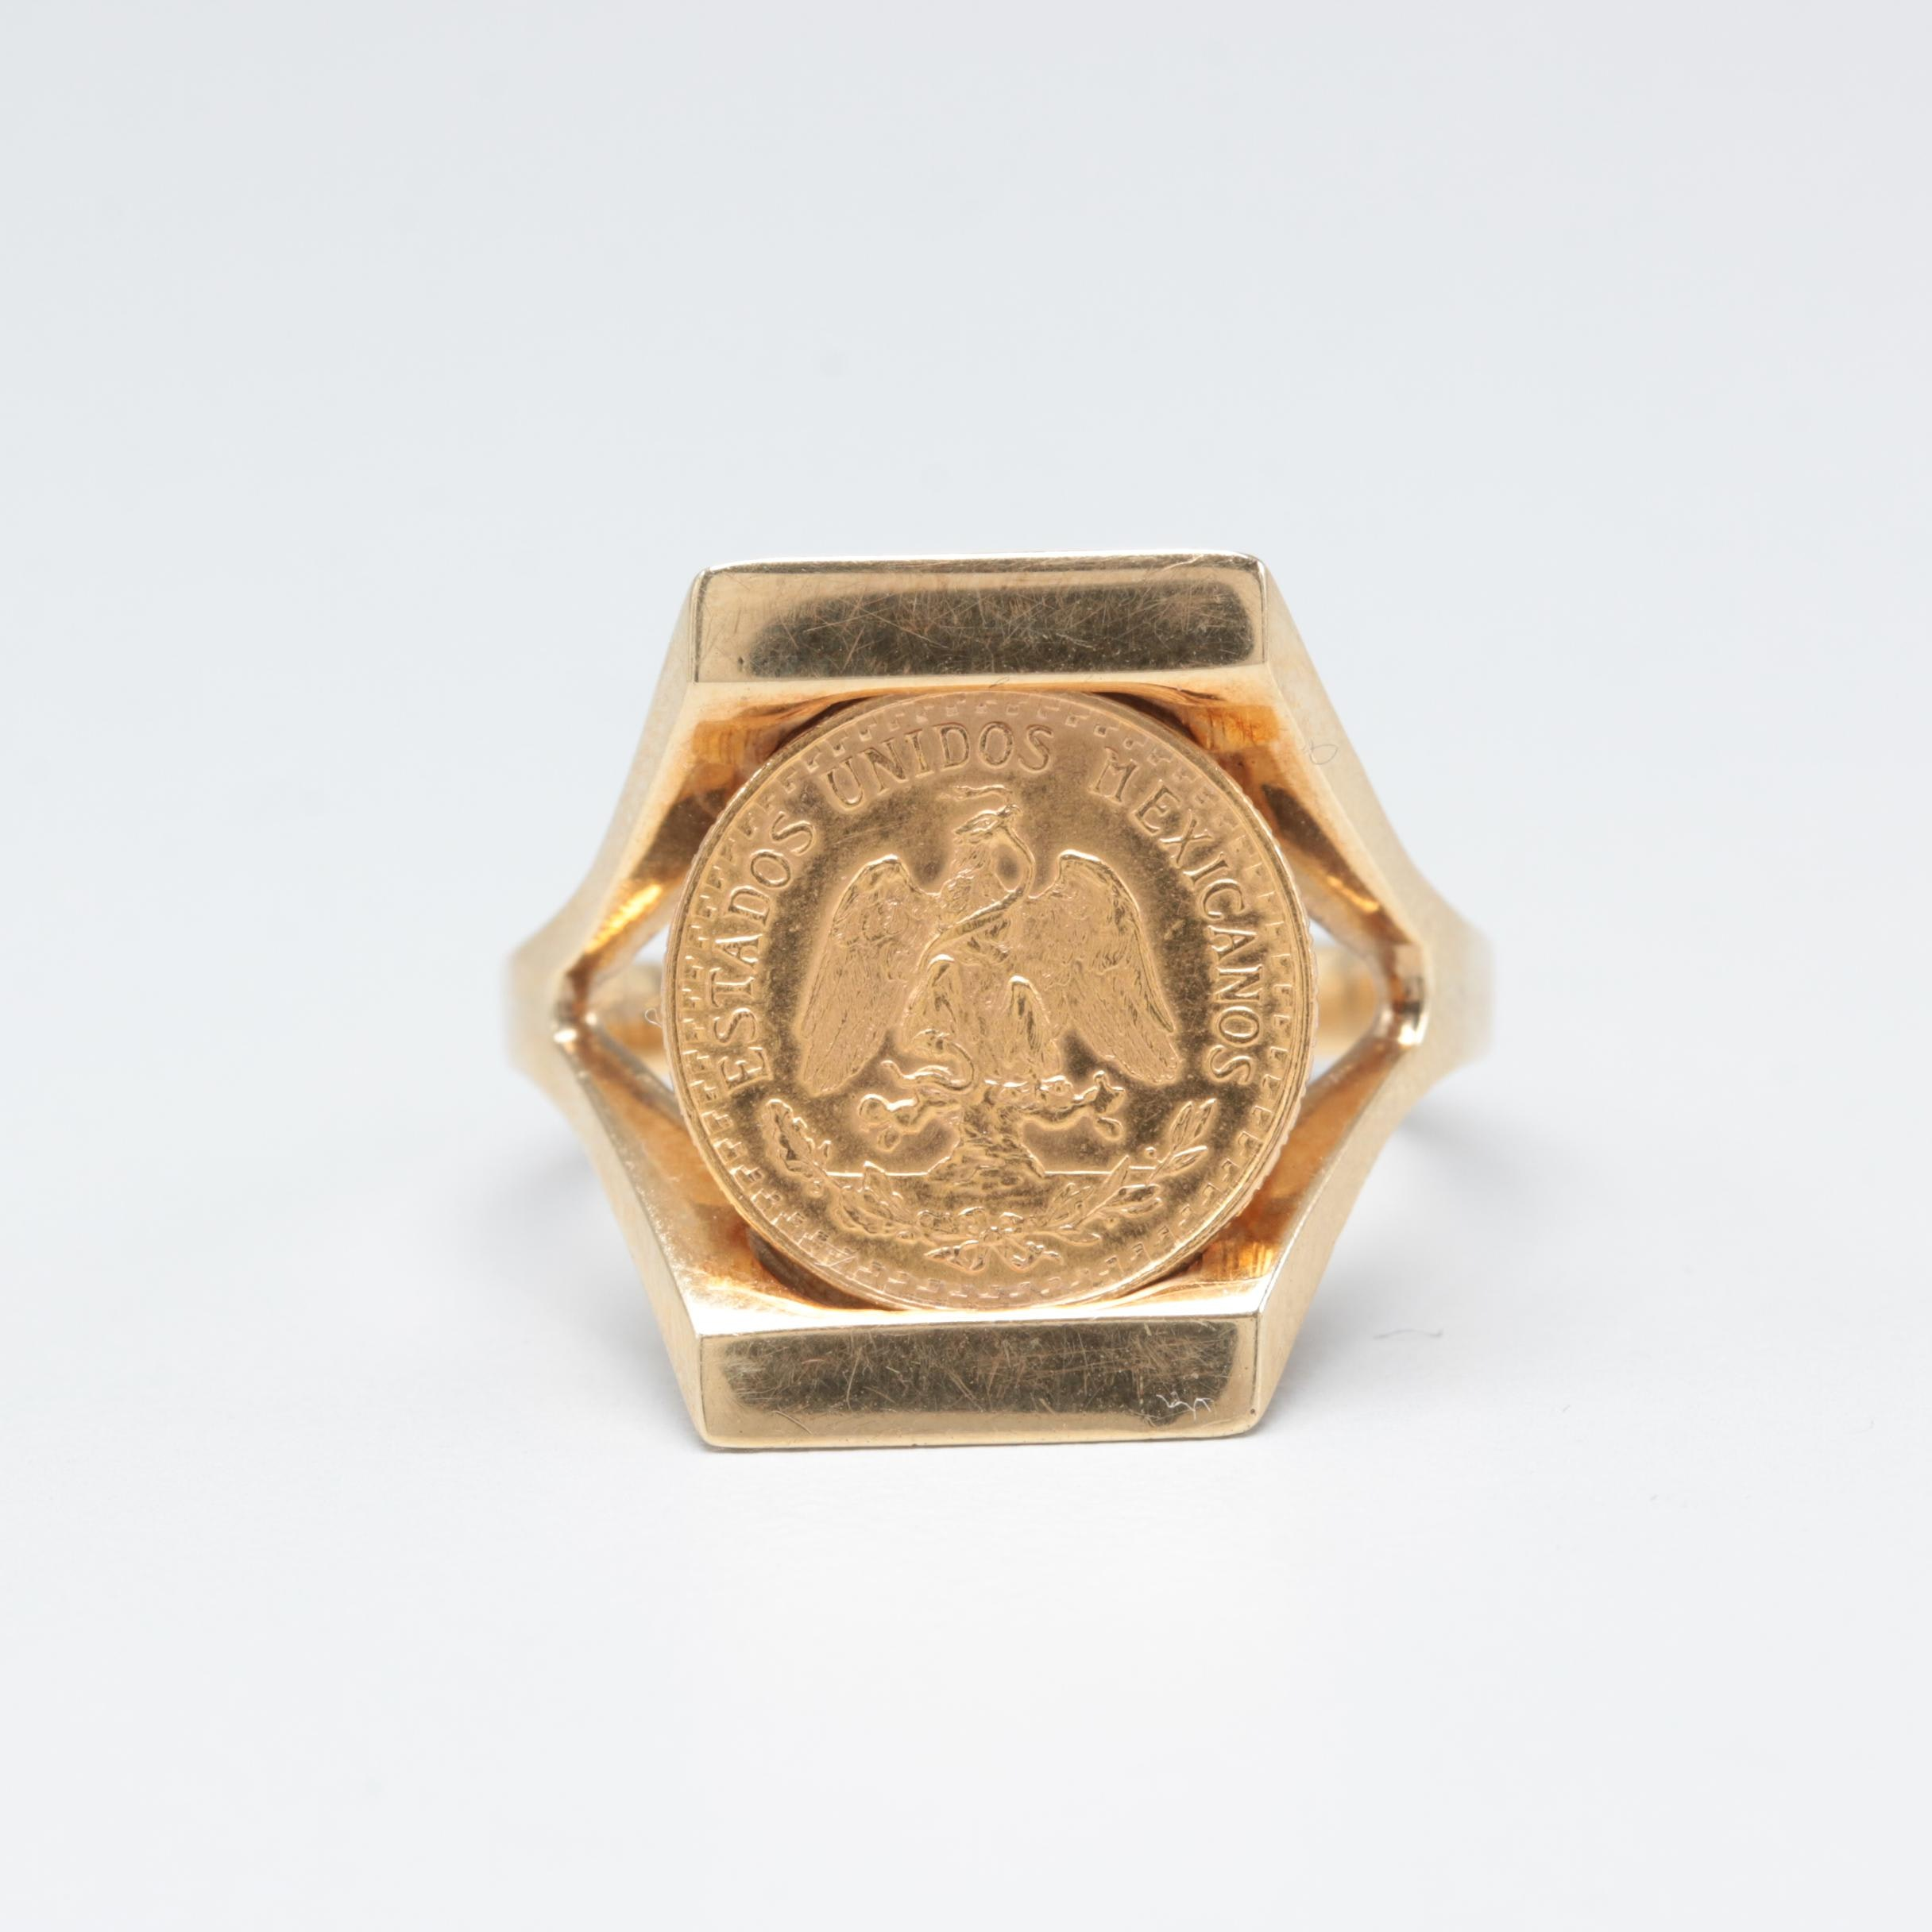 14K Yellow Gold Ring with a 1945 Mexico Two Pesos 22K Gold Coin